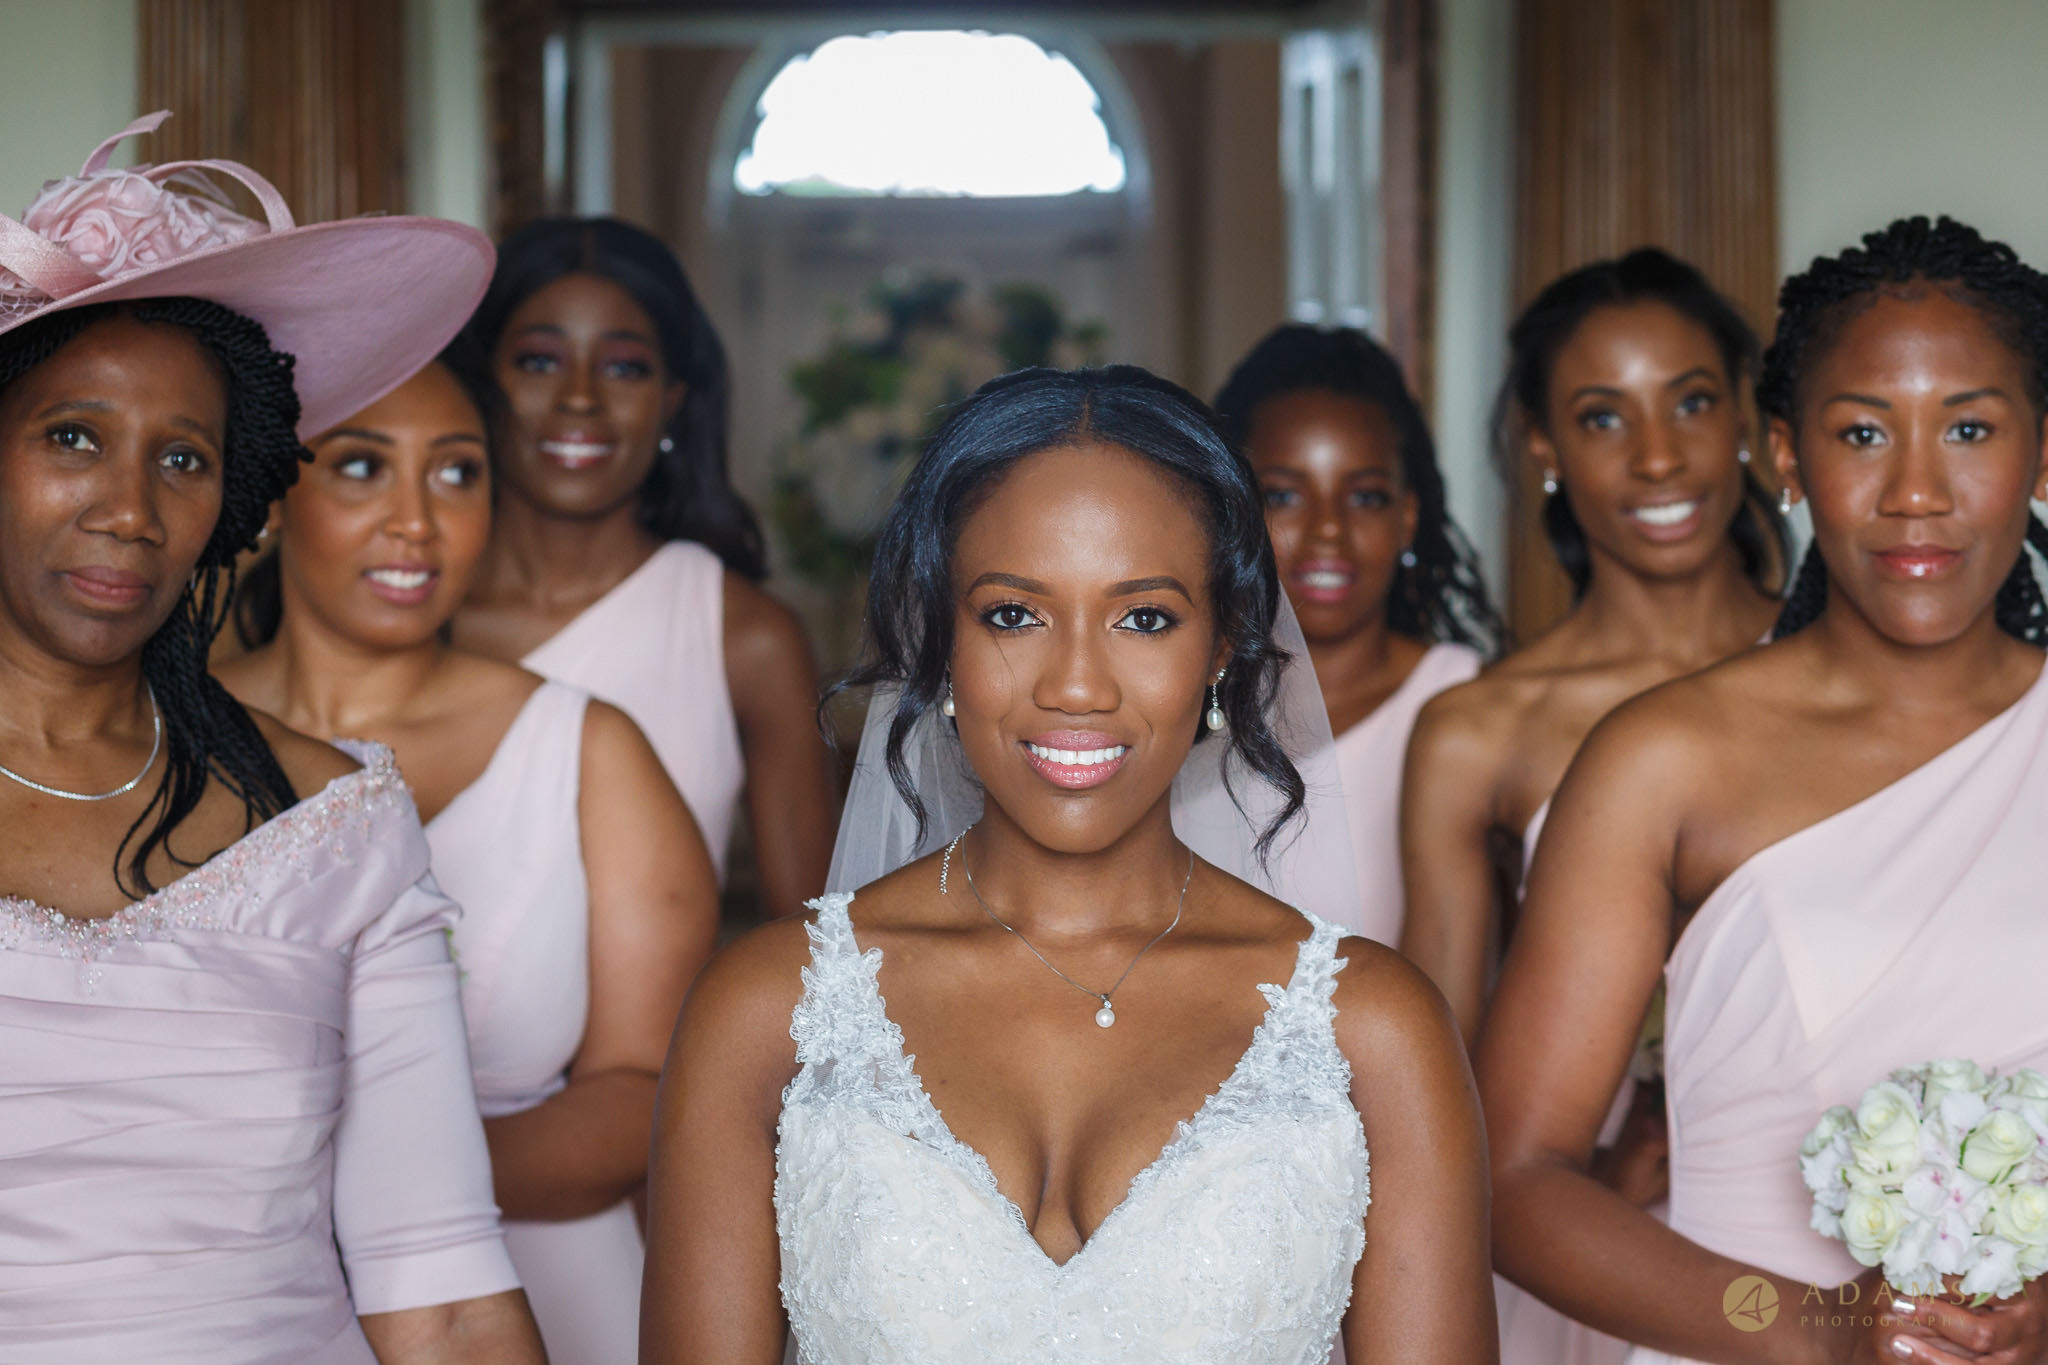 Bride and her bridesmaids posing for a photo